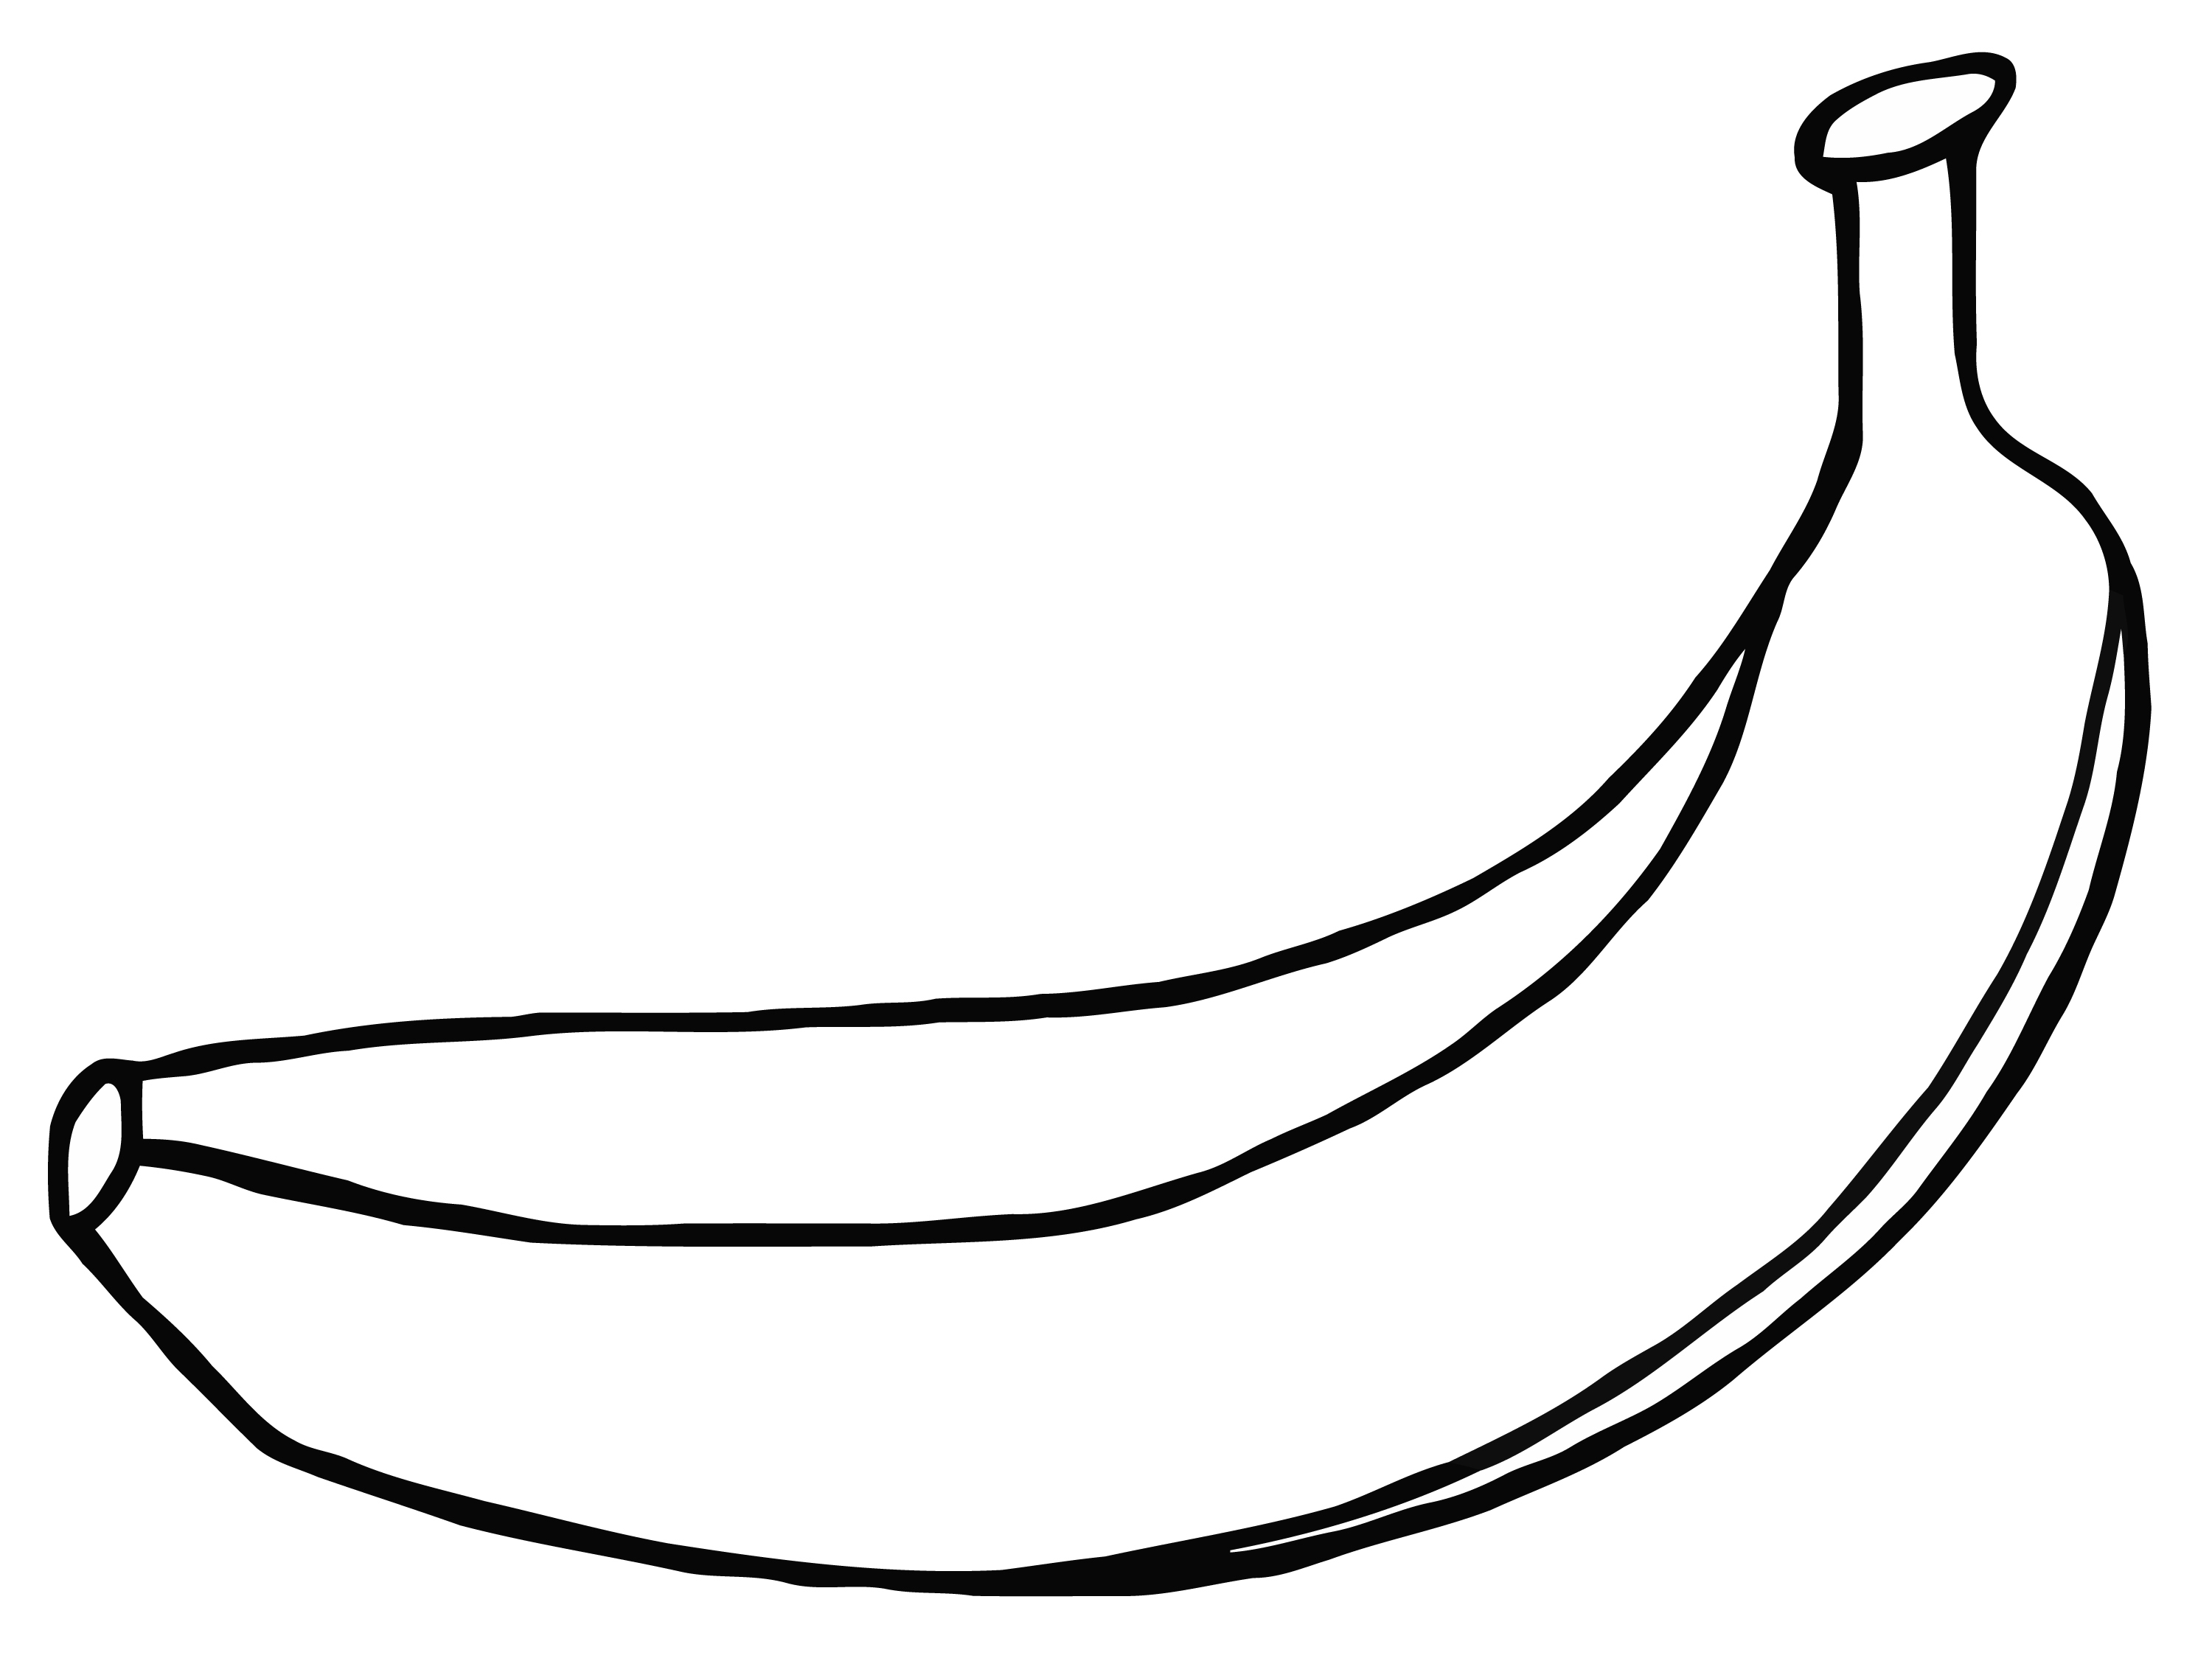 Banana black and white clipart clip art royalty free library Banana Black And White | Free download best Banana Black And White ... clip art royalty free library